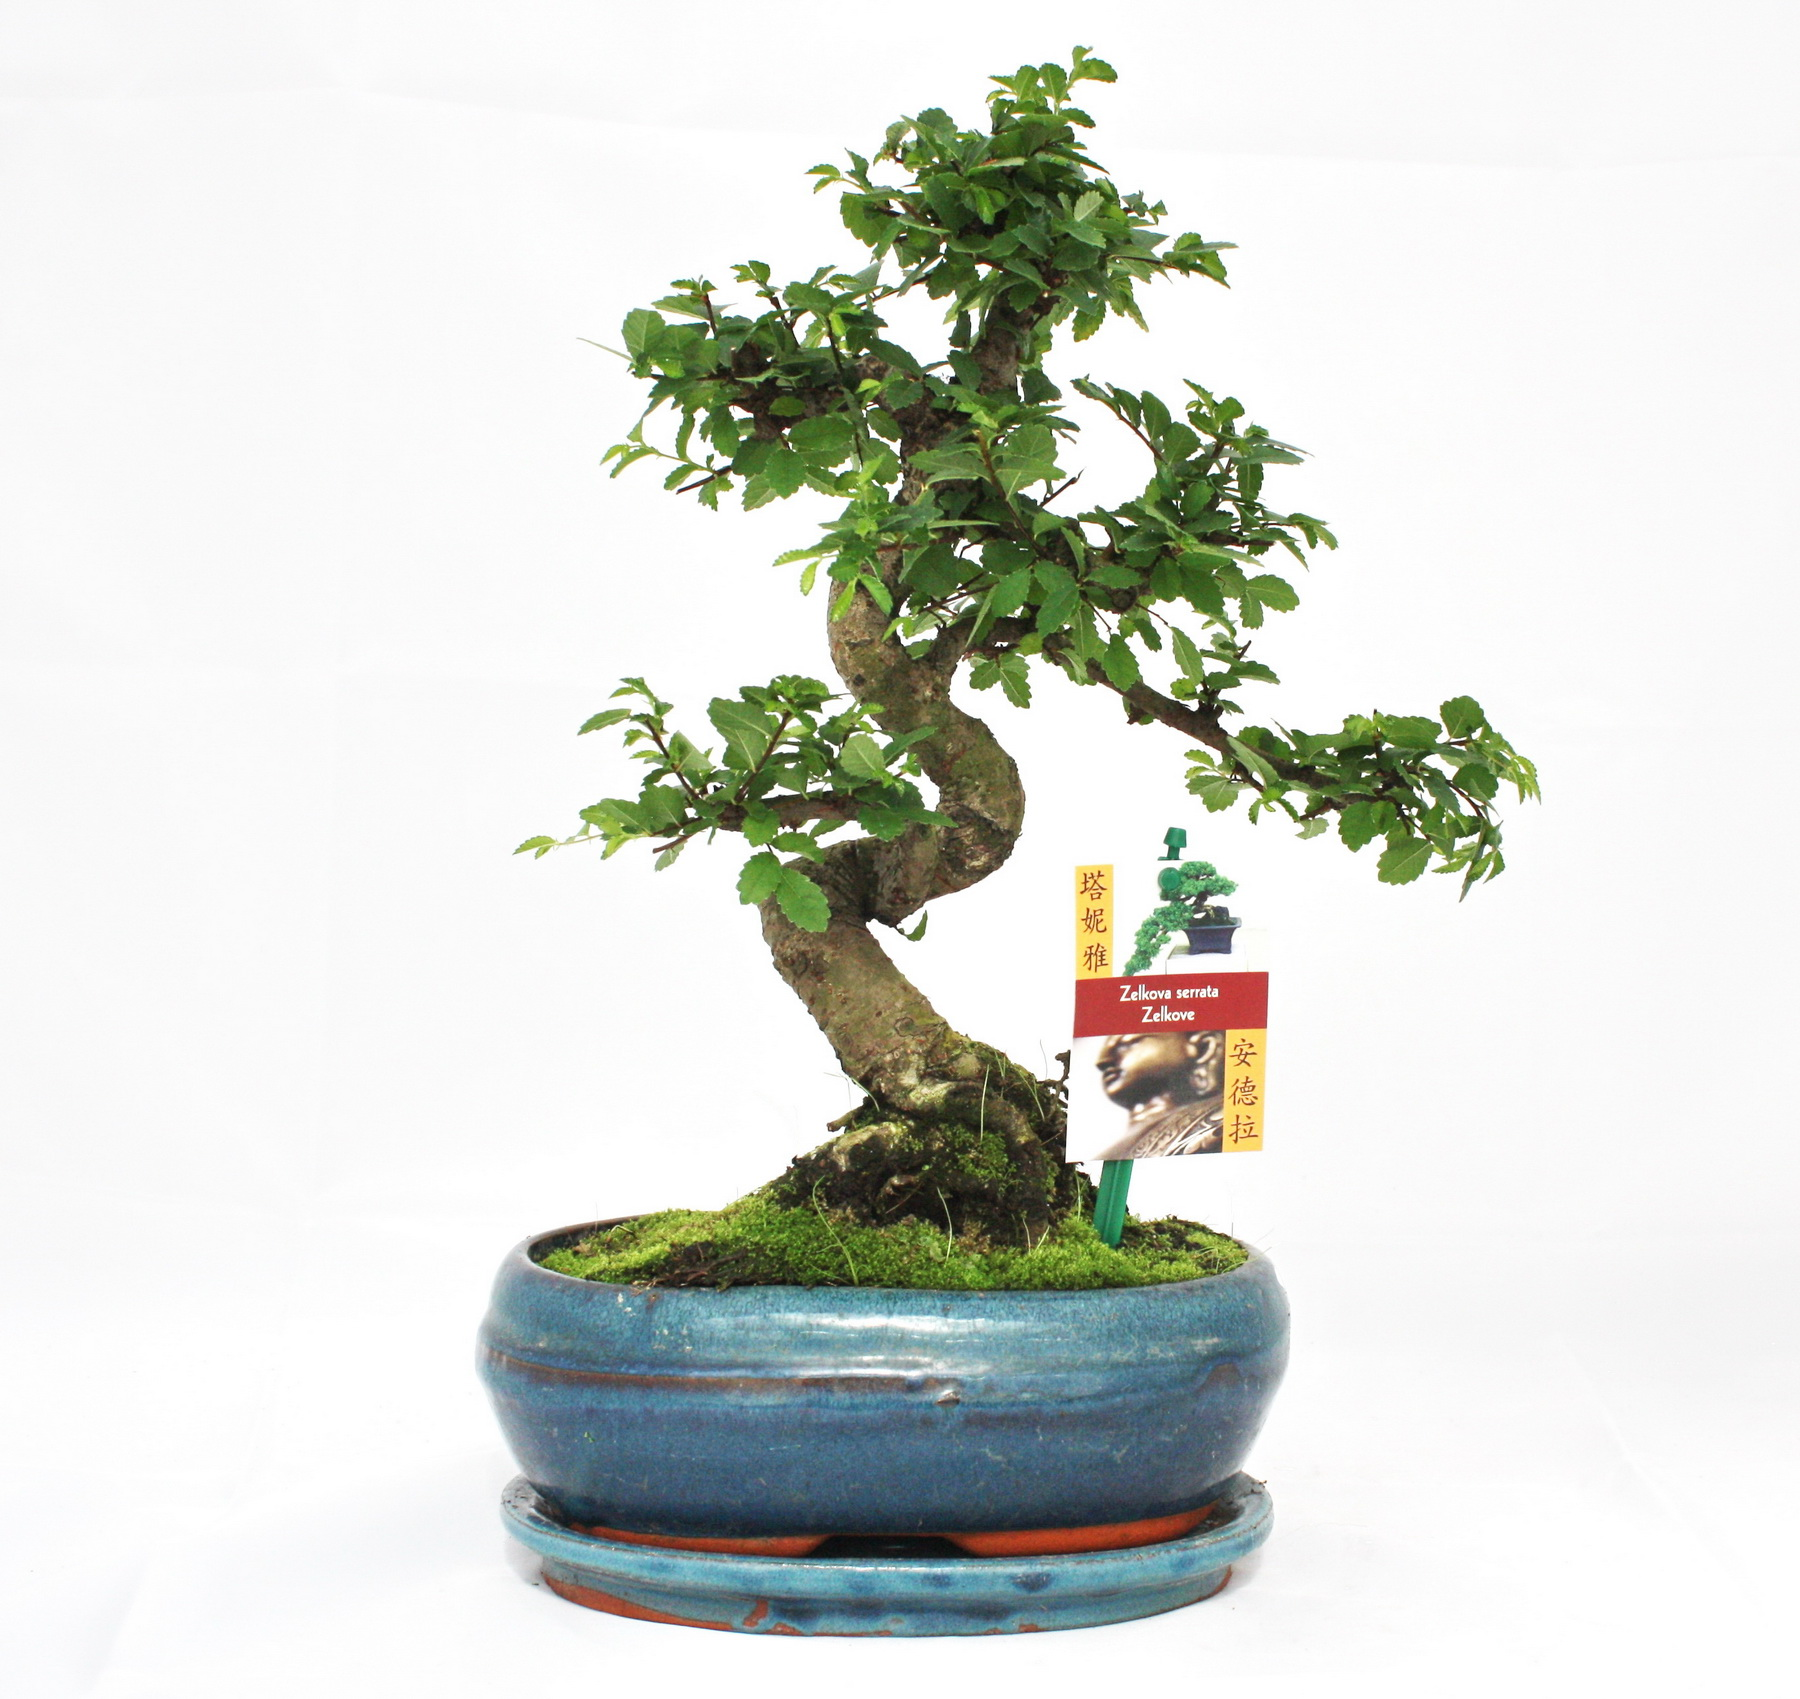 bonsai chinesische ulme ulmus parviflora ca 8 jahre ebay. Black Bedroom Furniture Sets. Home Design Ideas